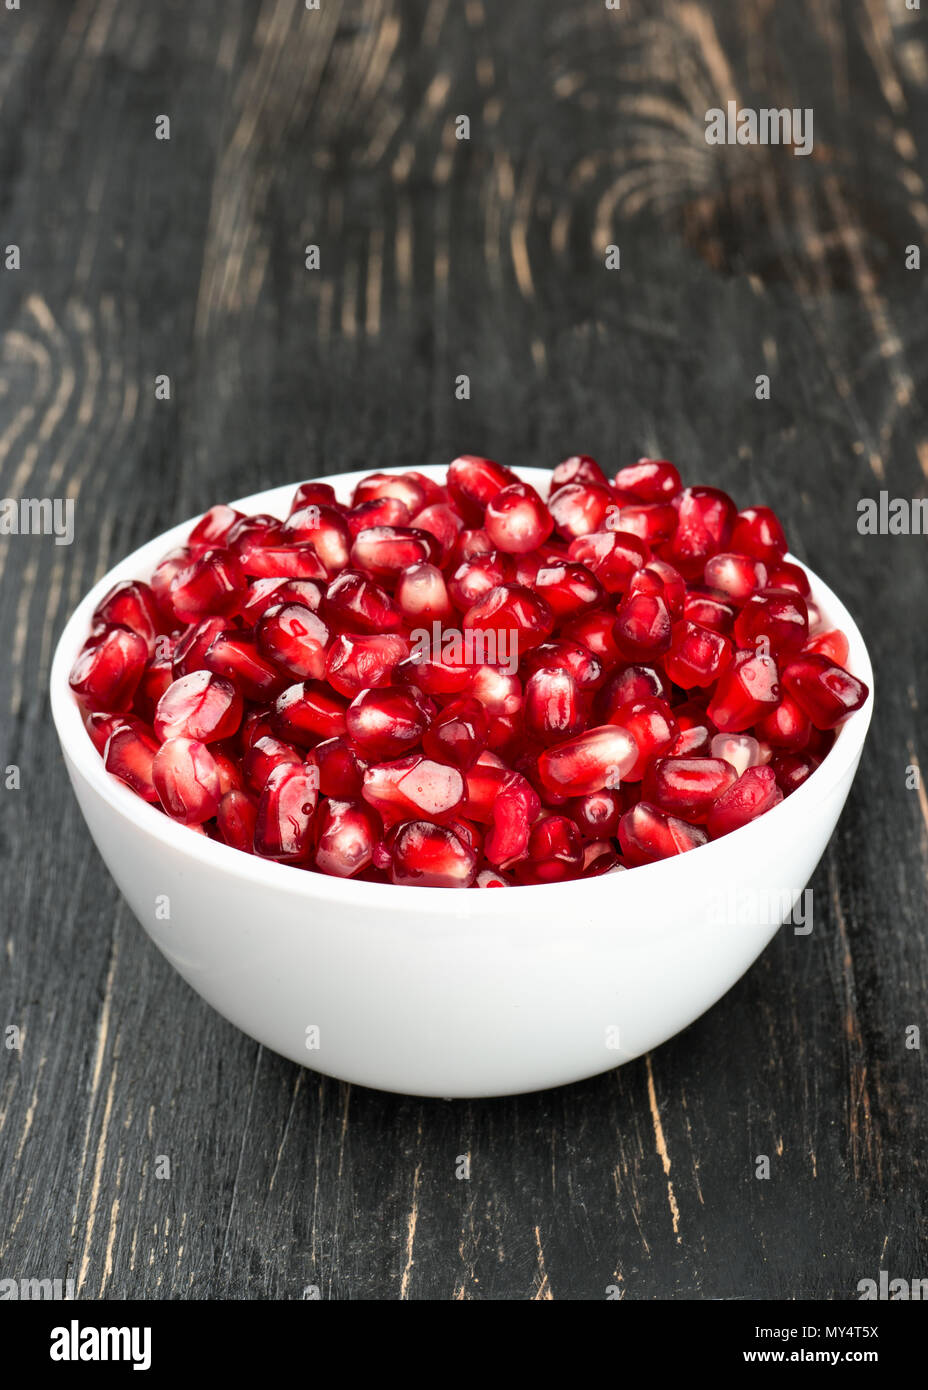 White bowl filled with pomegranate seeds on a wooden background close up - Stock Image